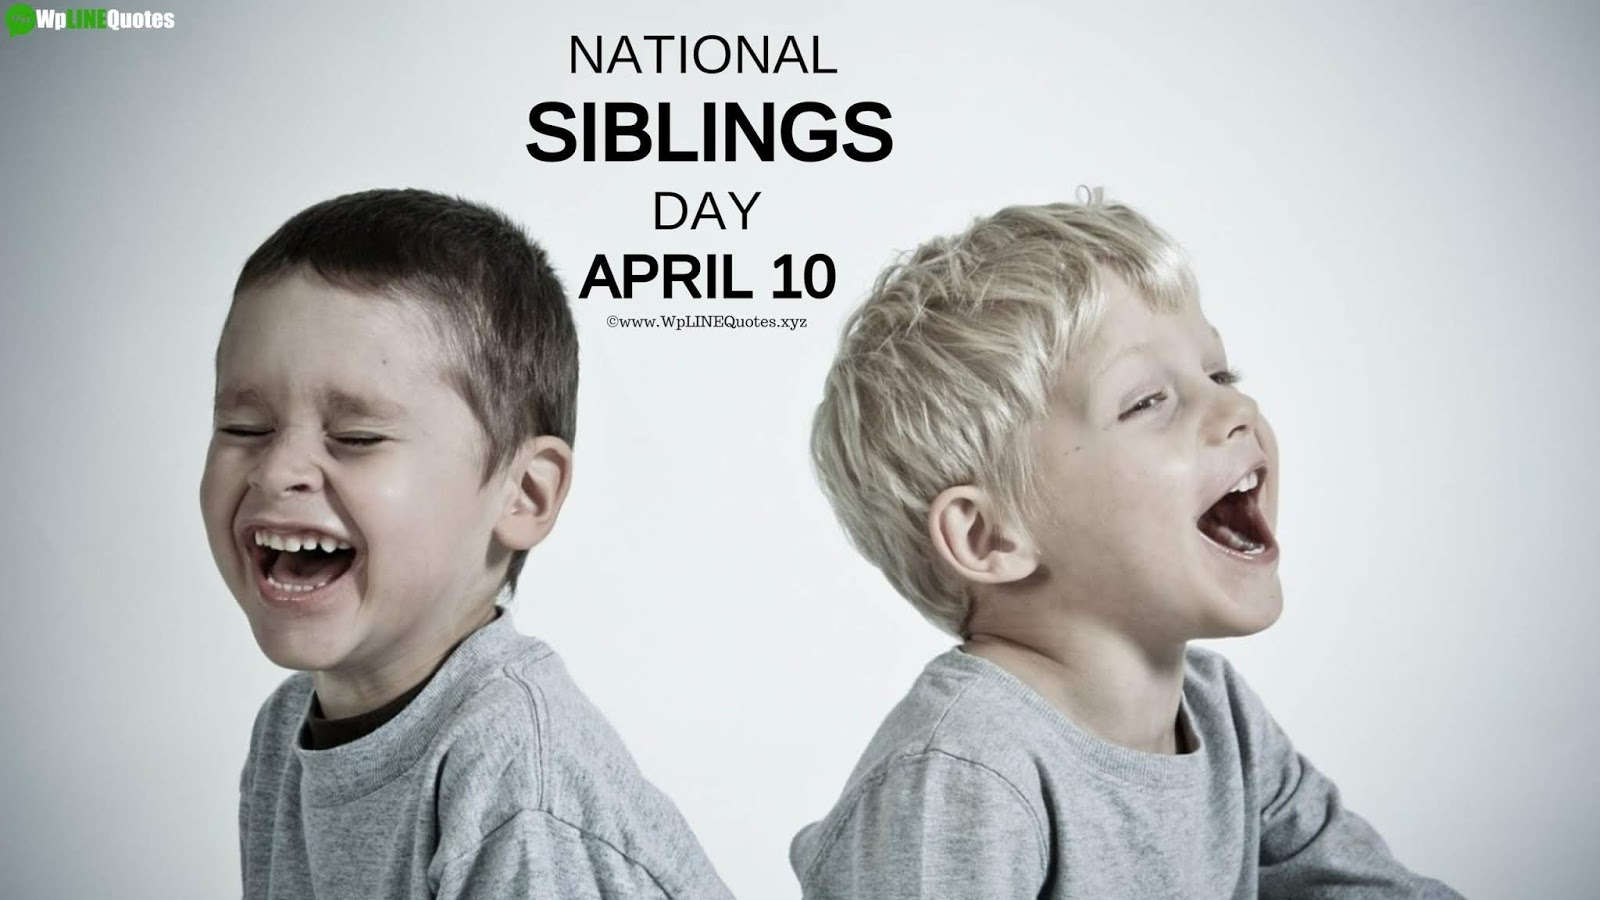 National Siblings Day Quotes, Captions, Wishes, Greetings, Meme, History, Facts, Images, Pictures, Photos, Wallpaper